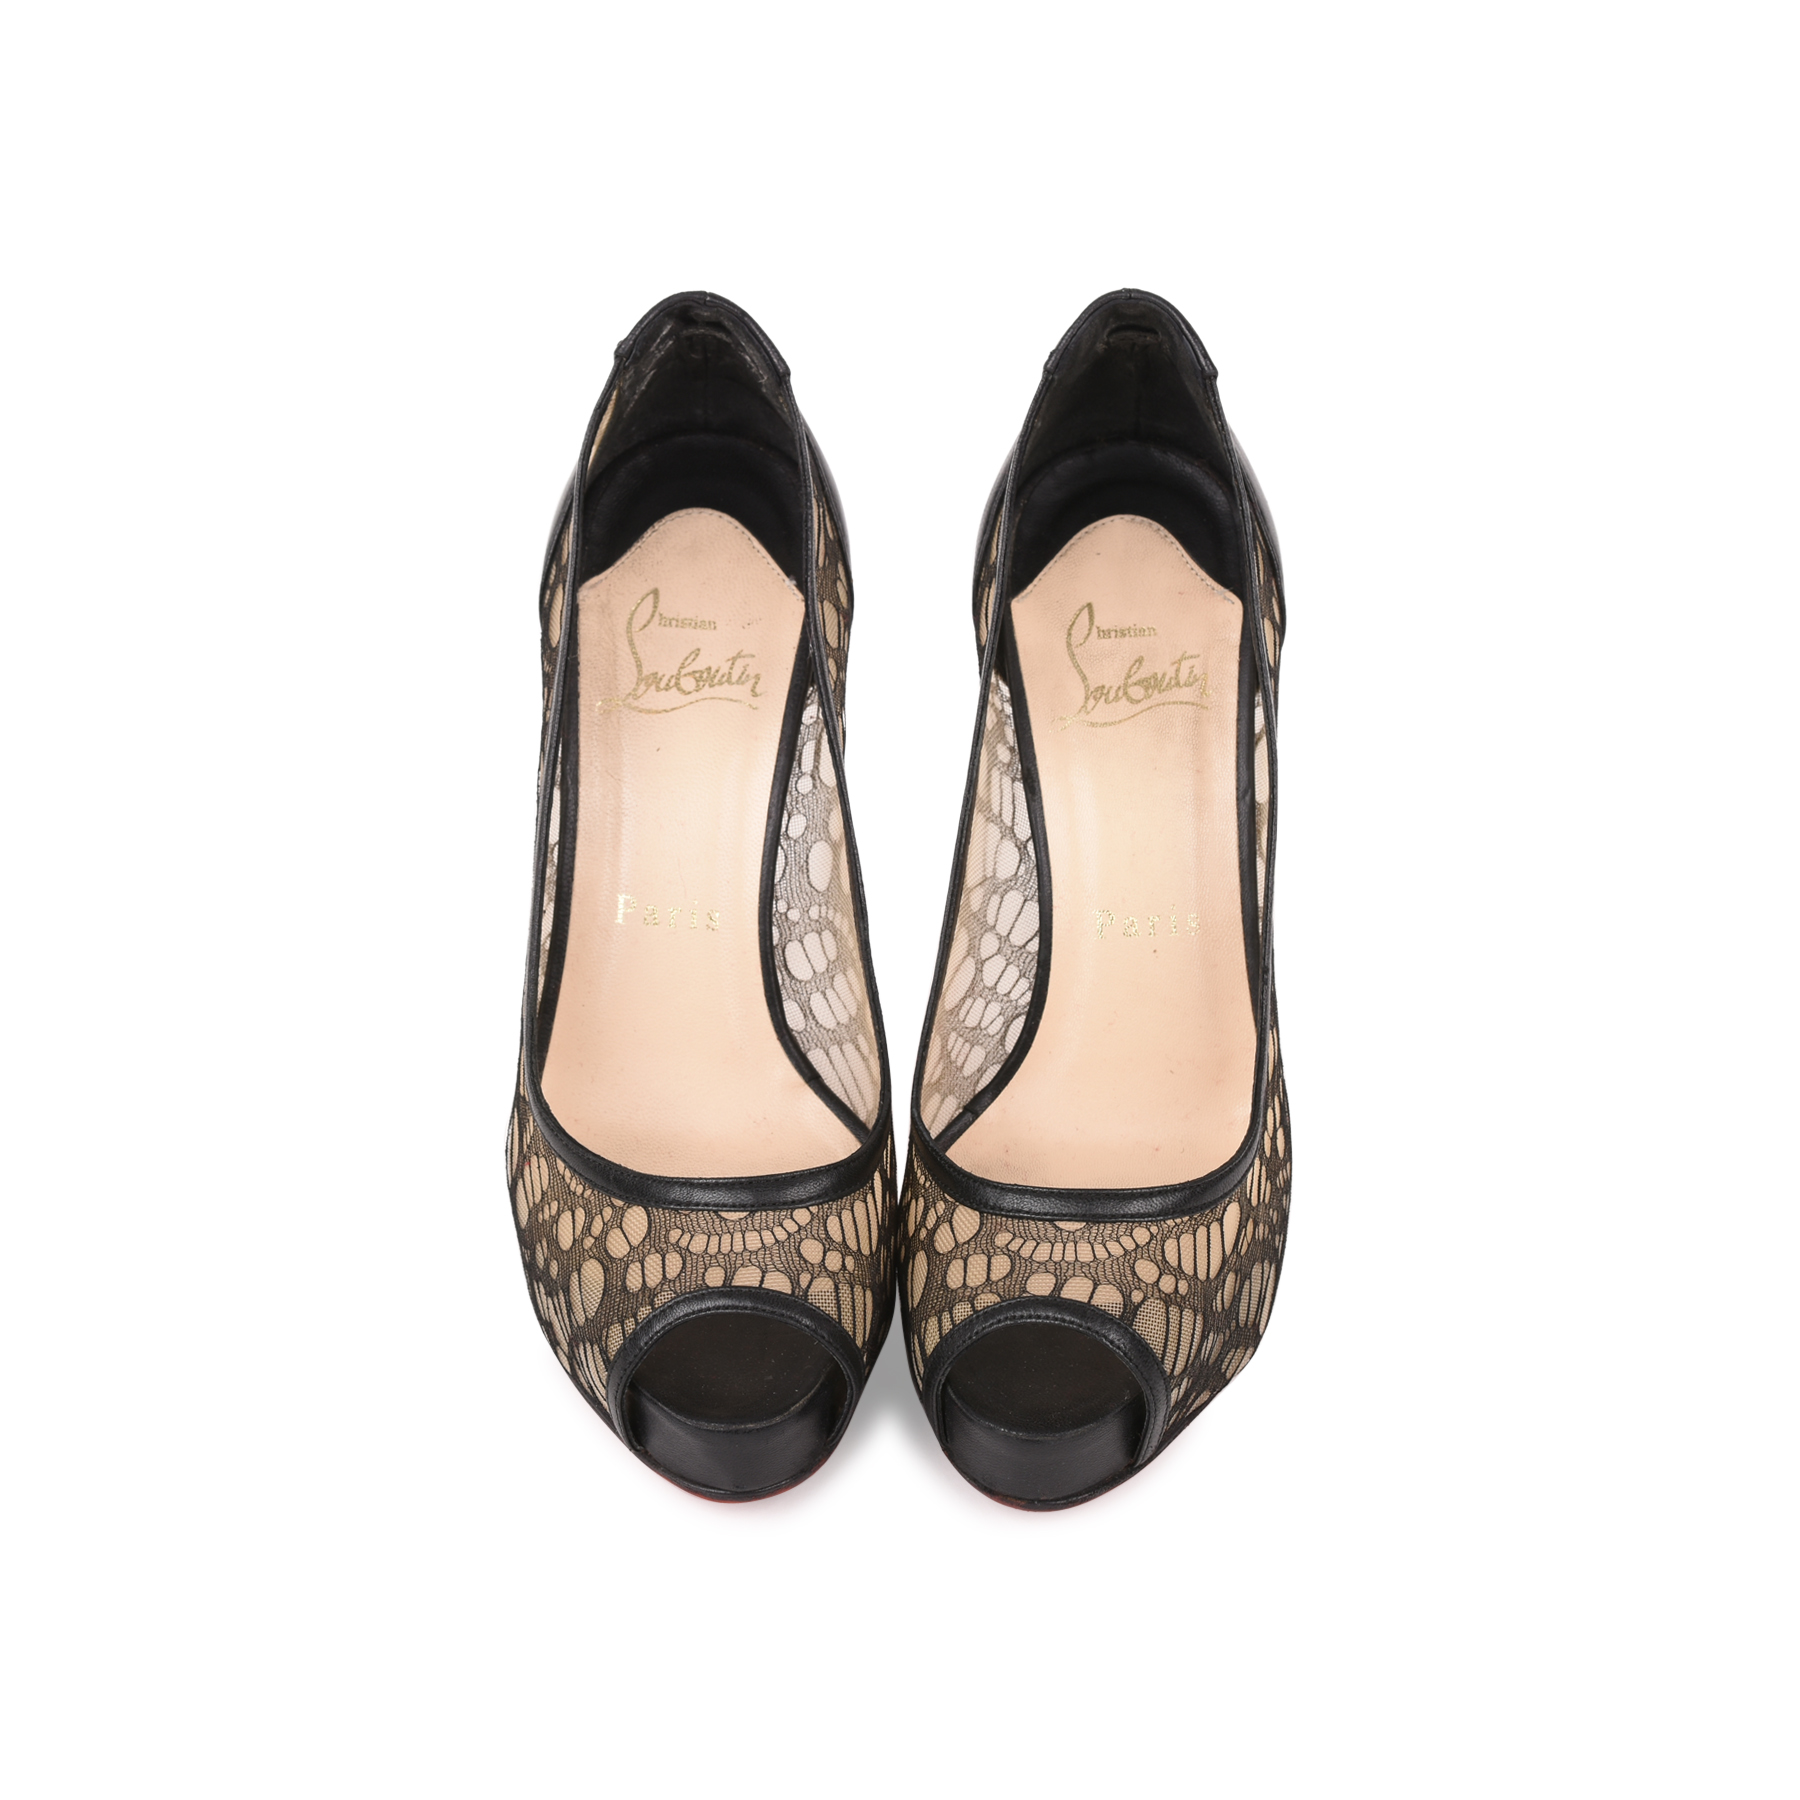 competitive price 8a30e 496c7 Very Lace Peep Toe Pumps